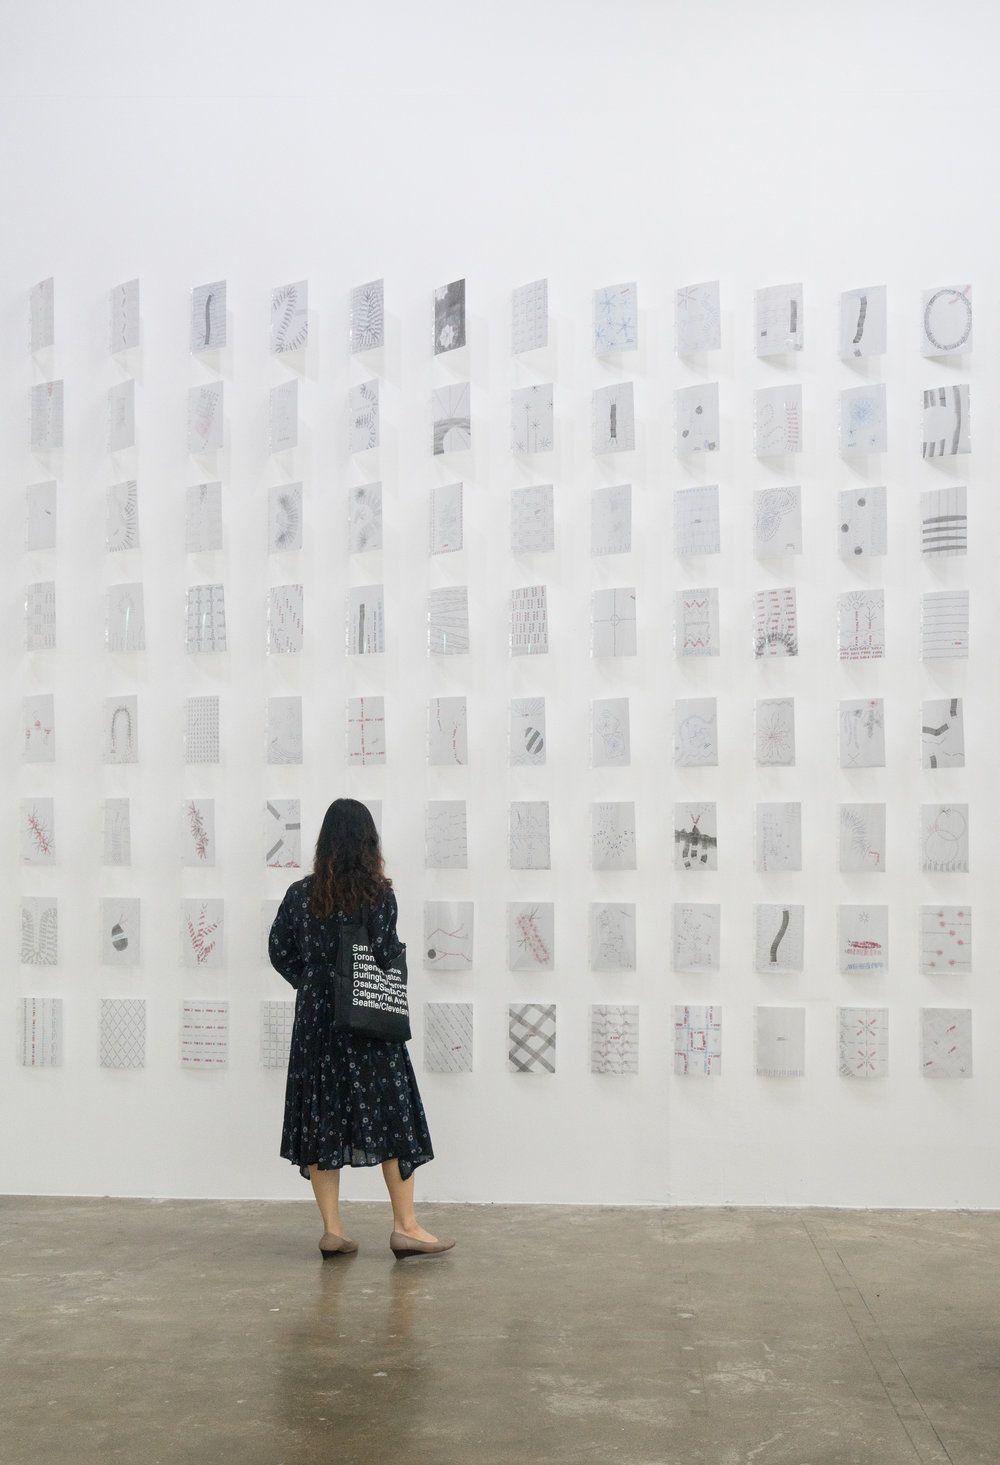 Installation View  Joy in Paperwork  Gwangju Biennale, Gwangju, KR  2016